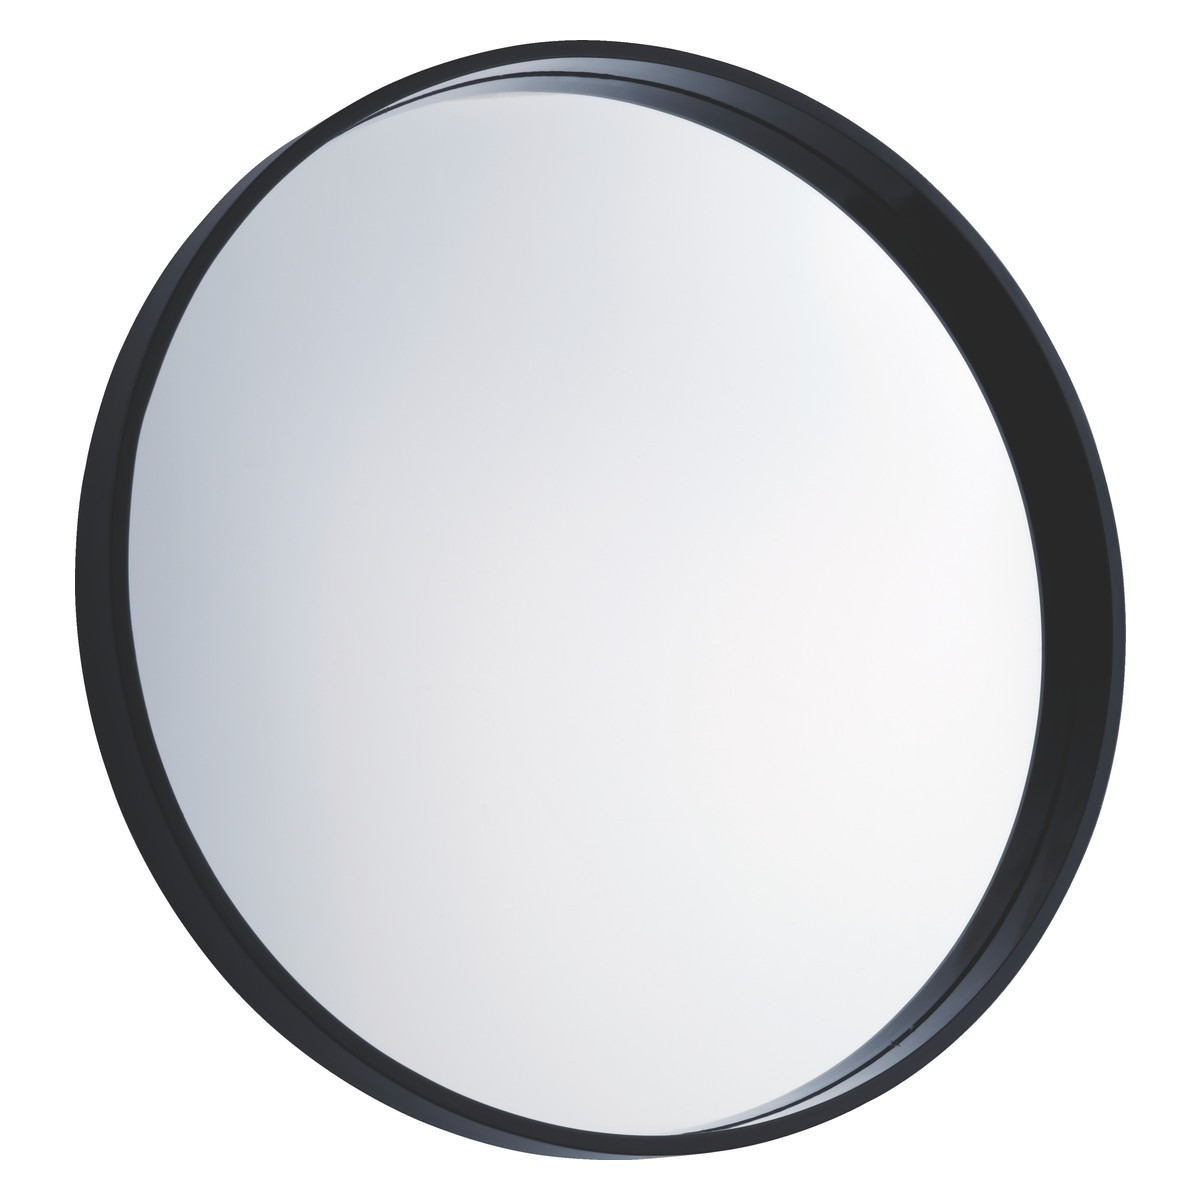 Aimee Black Round Wall Mirror D65cm Buy Now At Habitat Uk Pertaining To Large Black Round Mirror (Image 1 of 15)